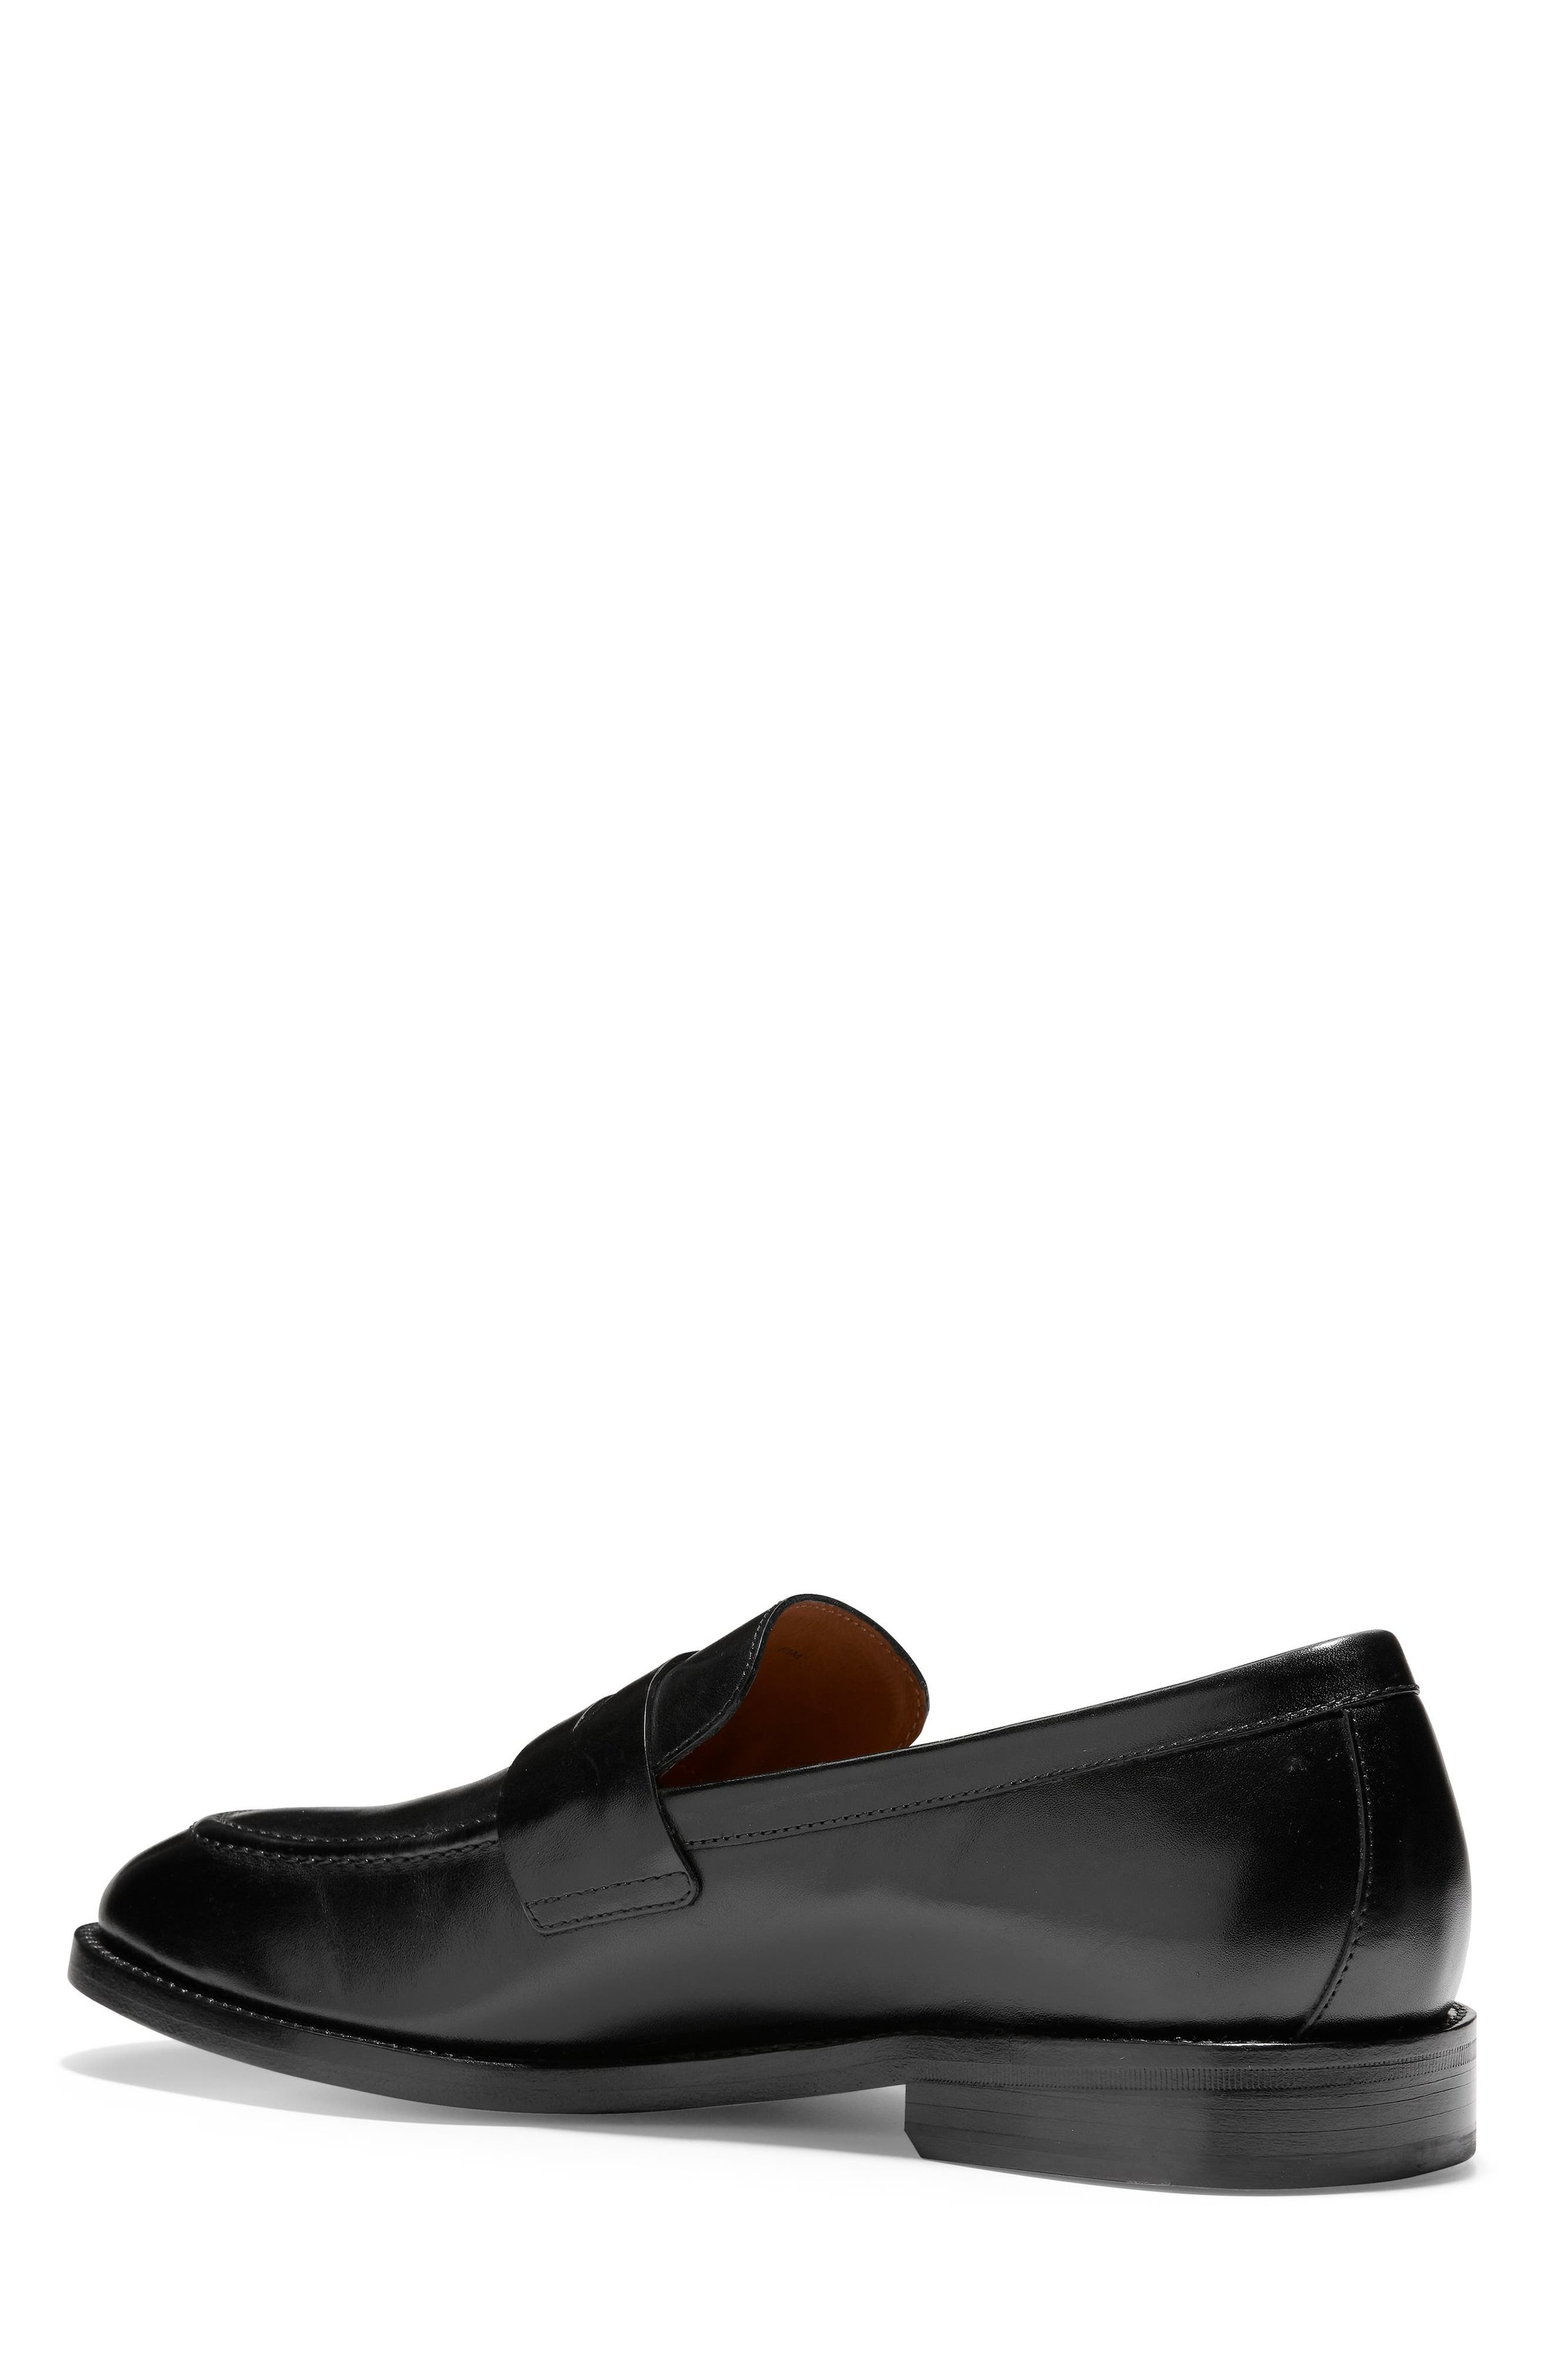 COLE HAAN, American Classics Kneeland Penny Loafer, Alternate thumbnail 2, color, BLACK LEATHER